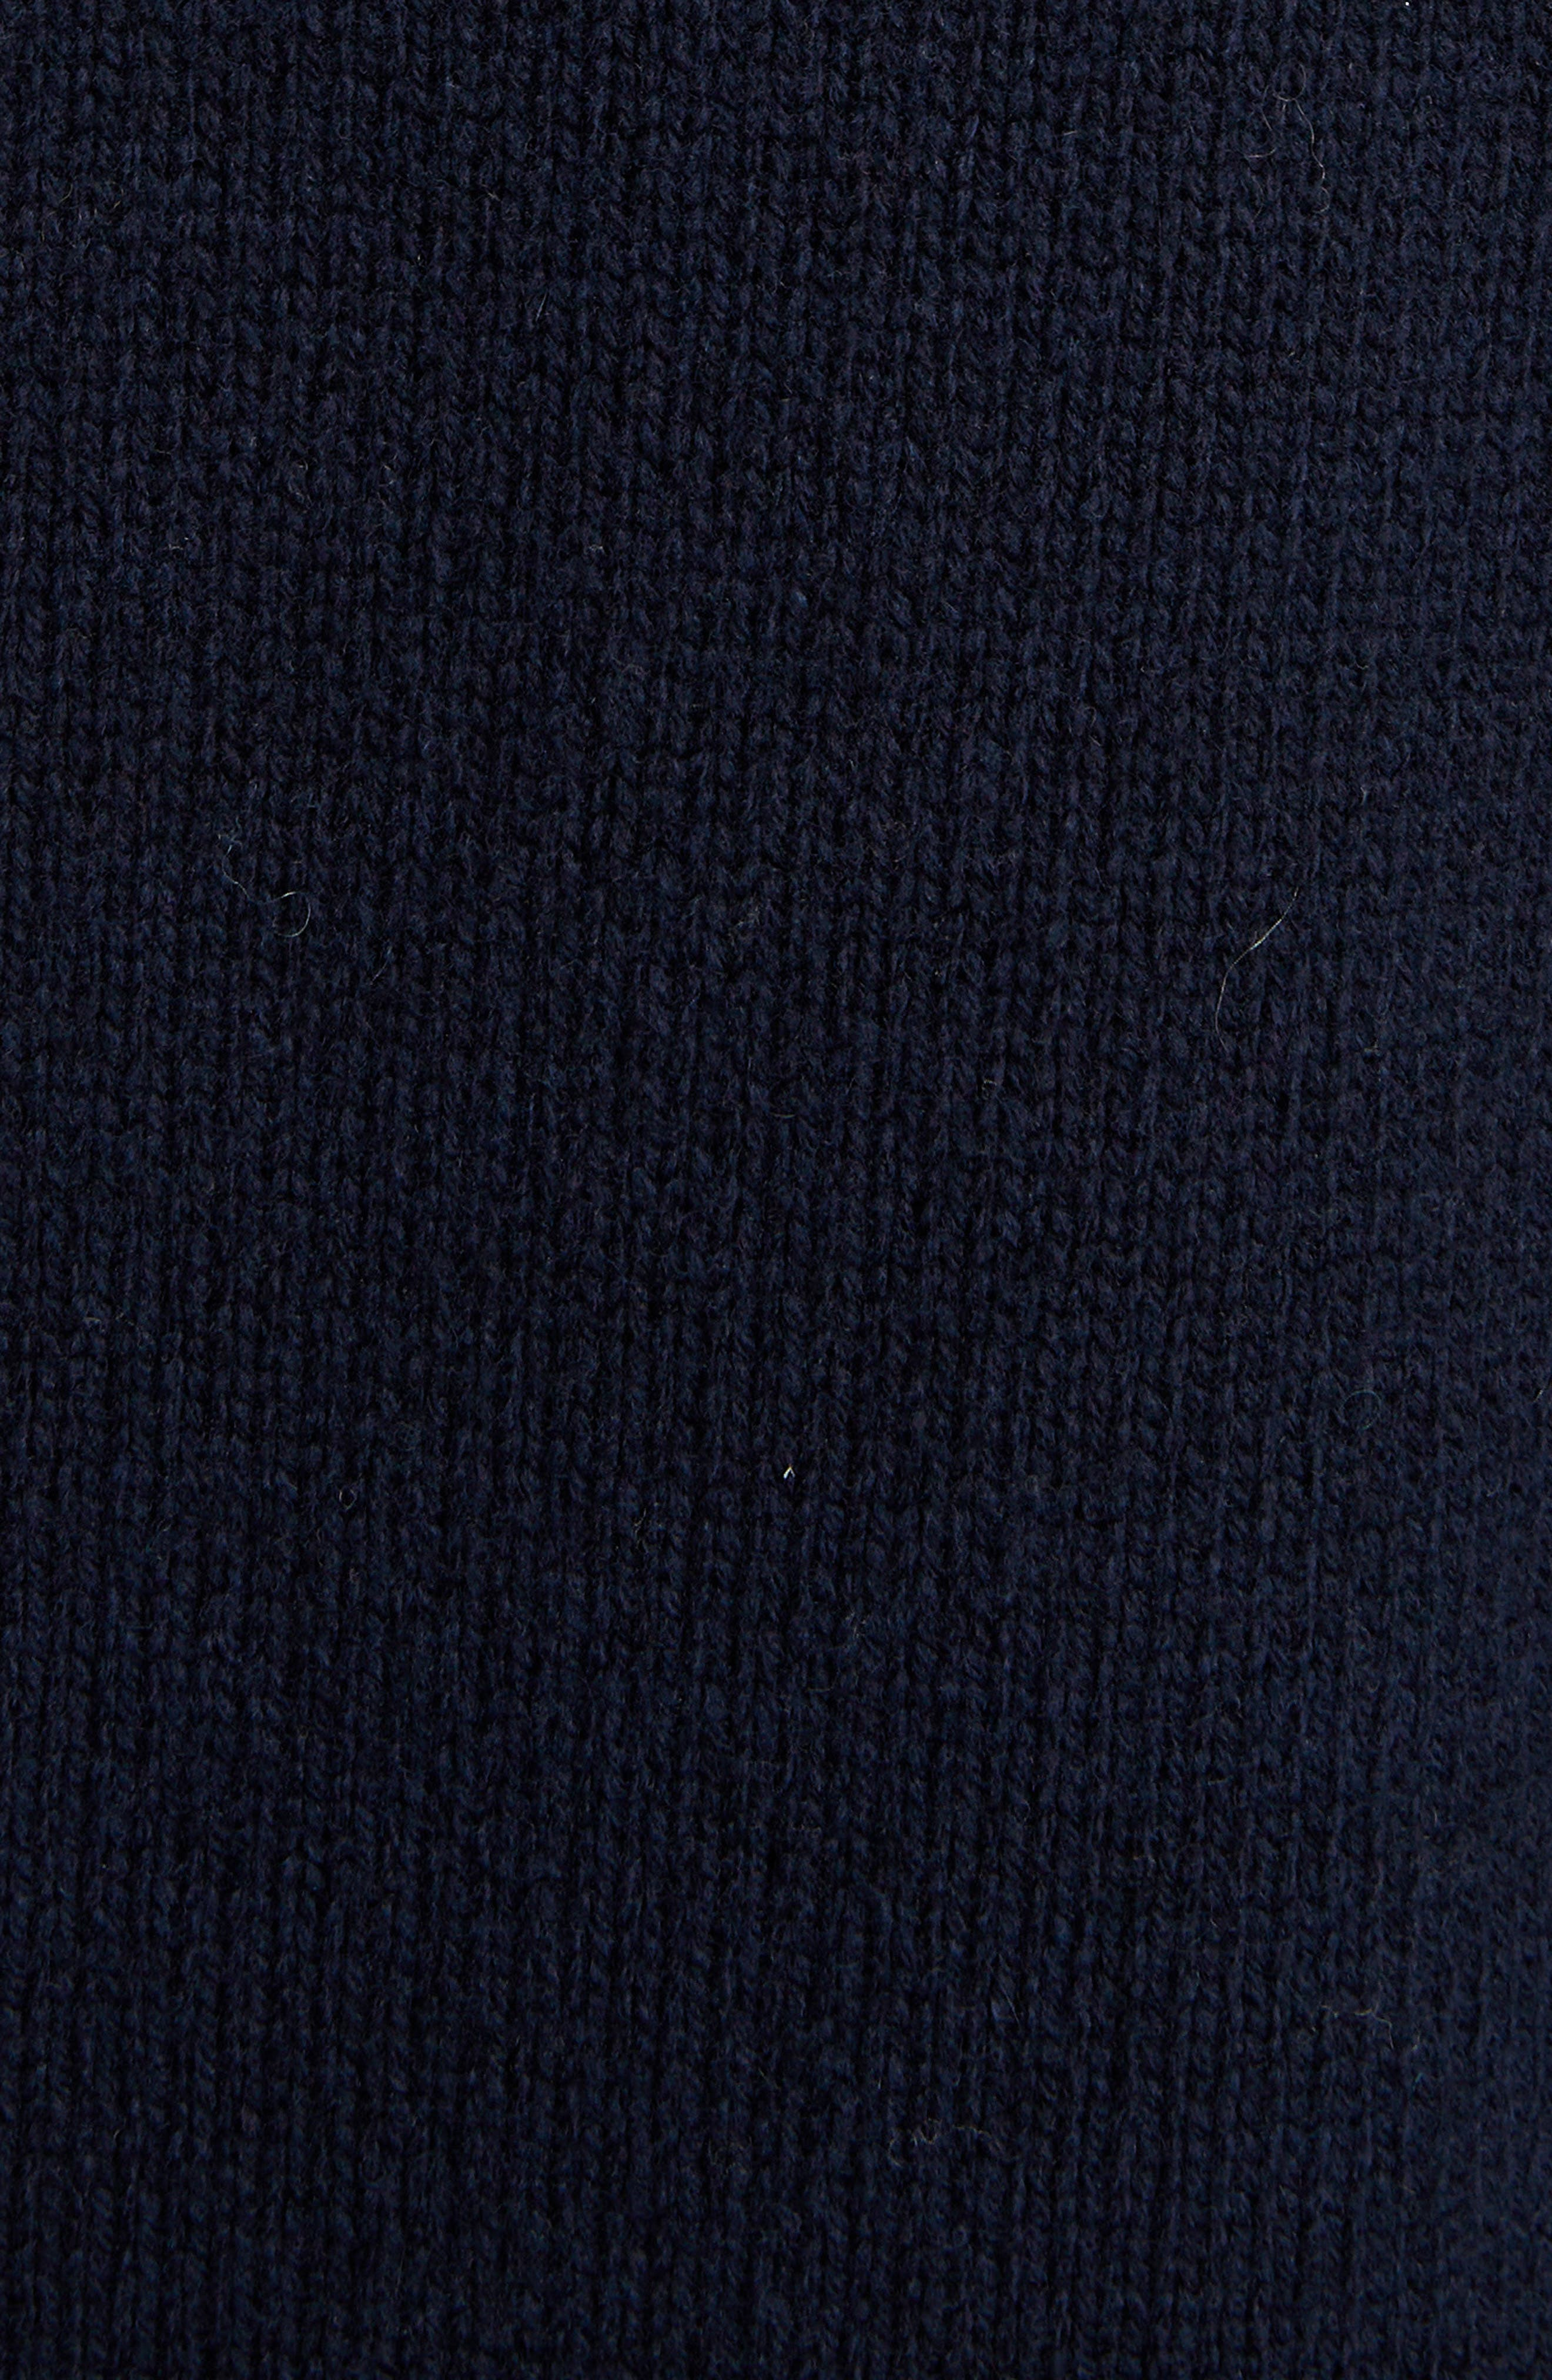 Inset Stretch Wool Sweater,                             Alternate thumbnail 5, color,                             NAVY